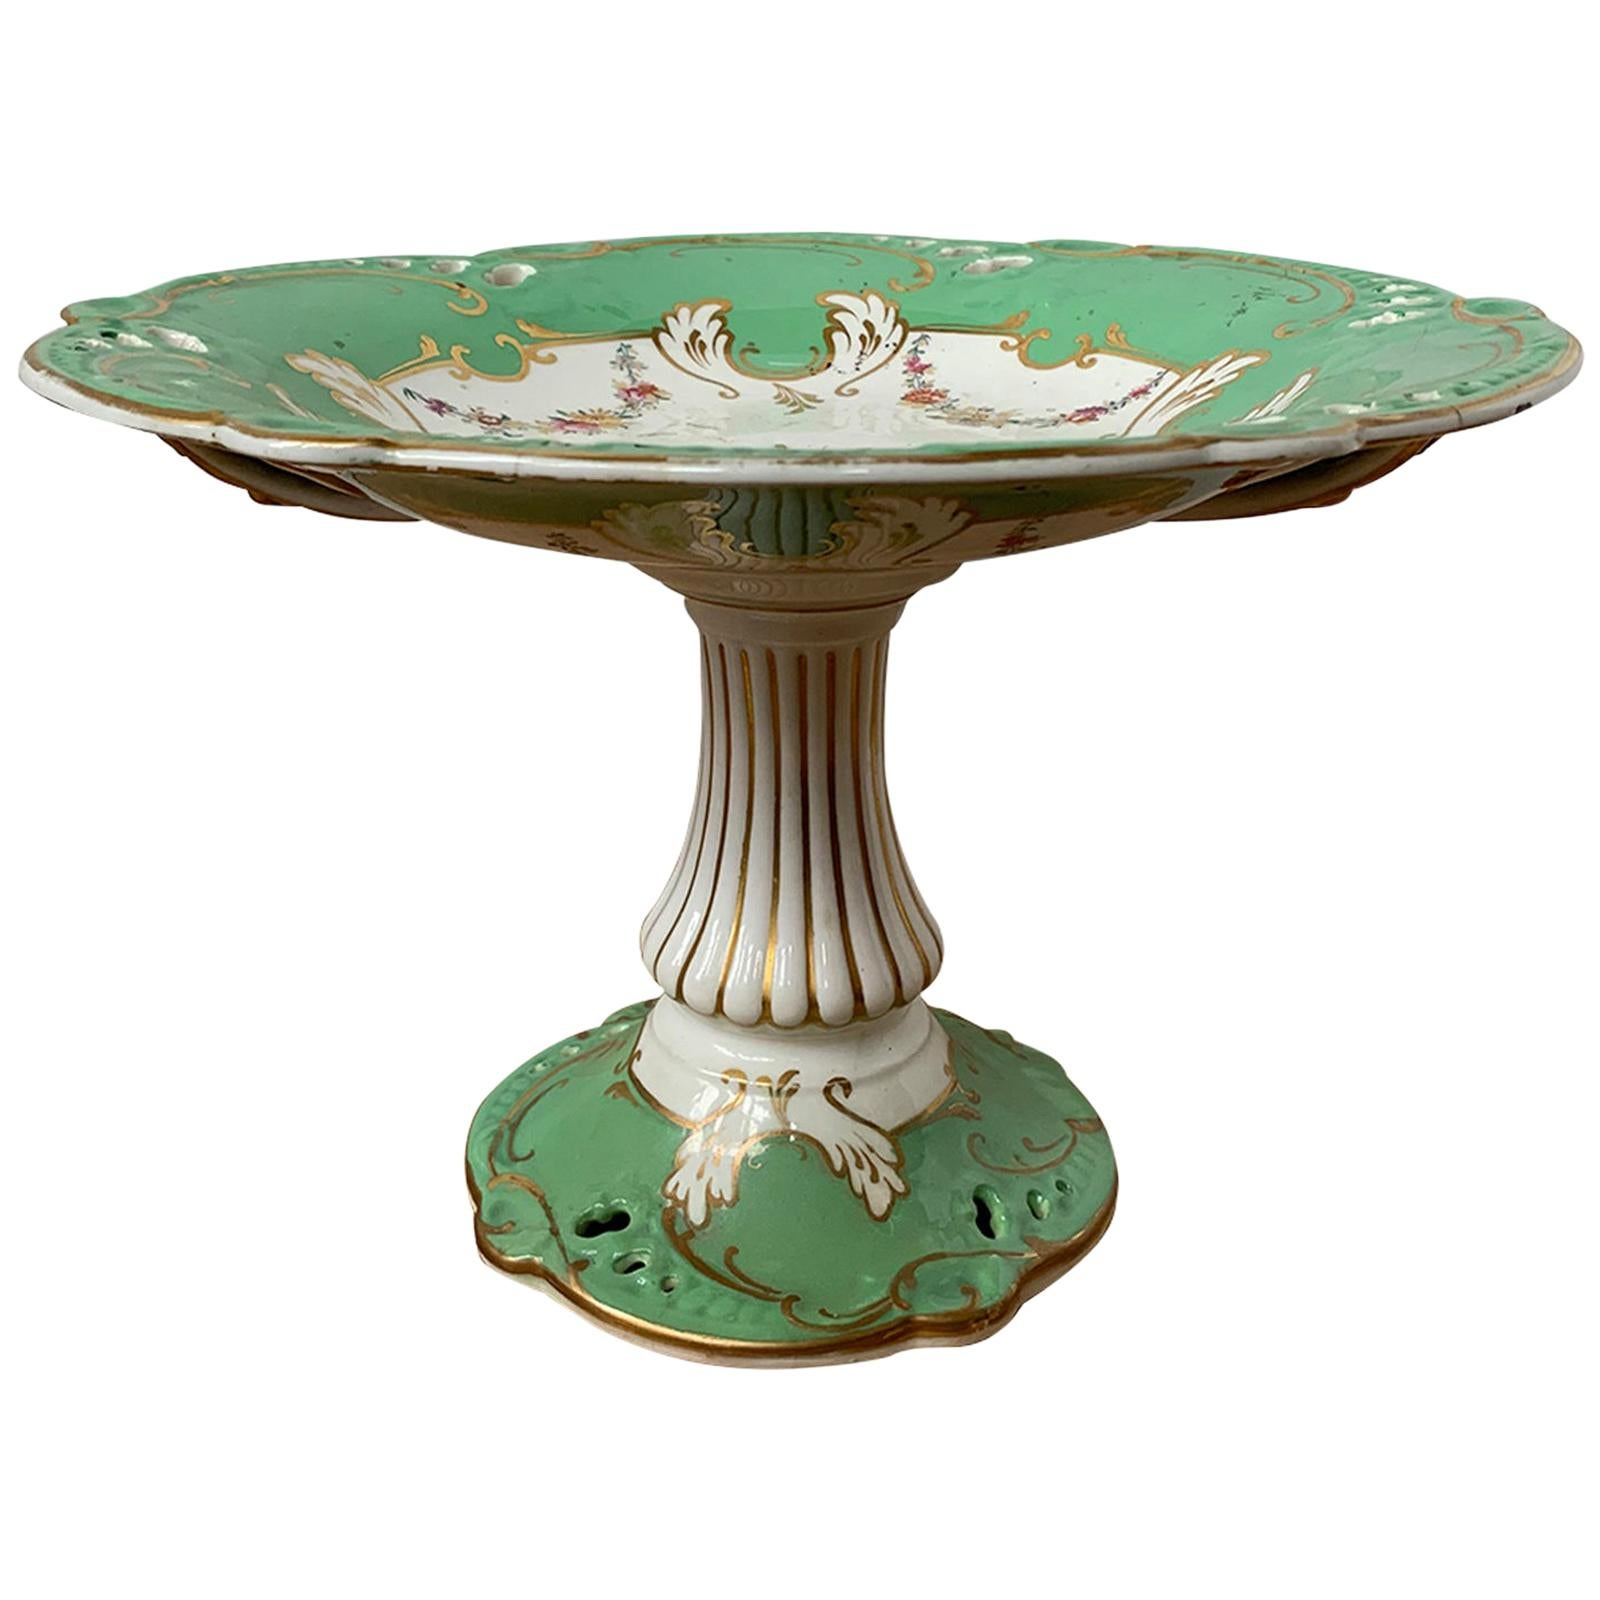 19th Century English Green & White Porcelain Compote with Gilt Details, Unmarked